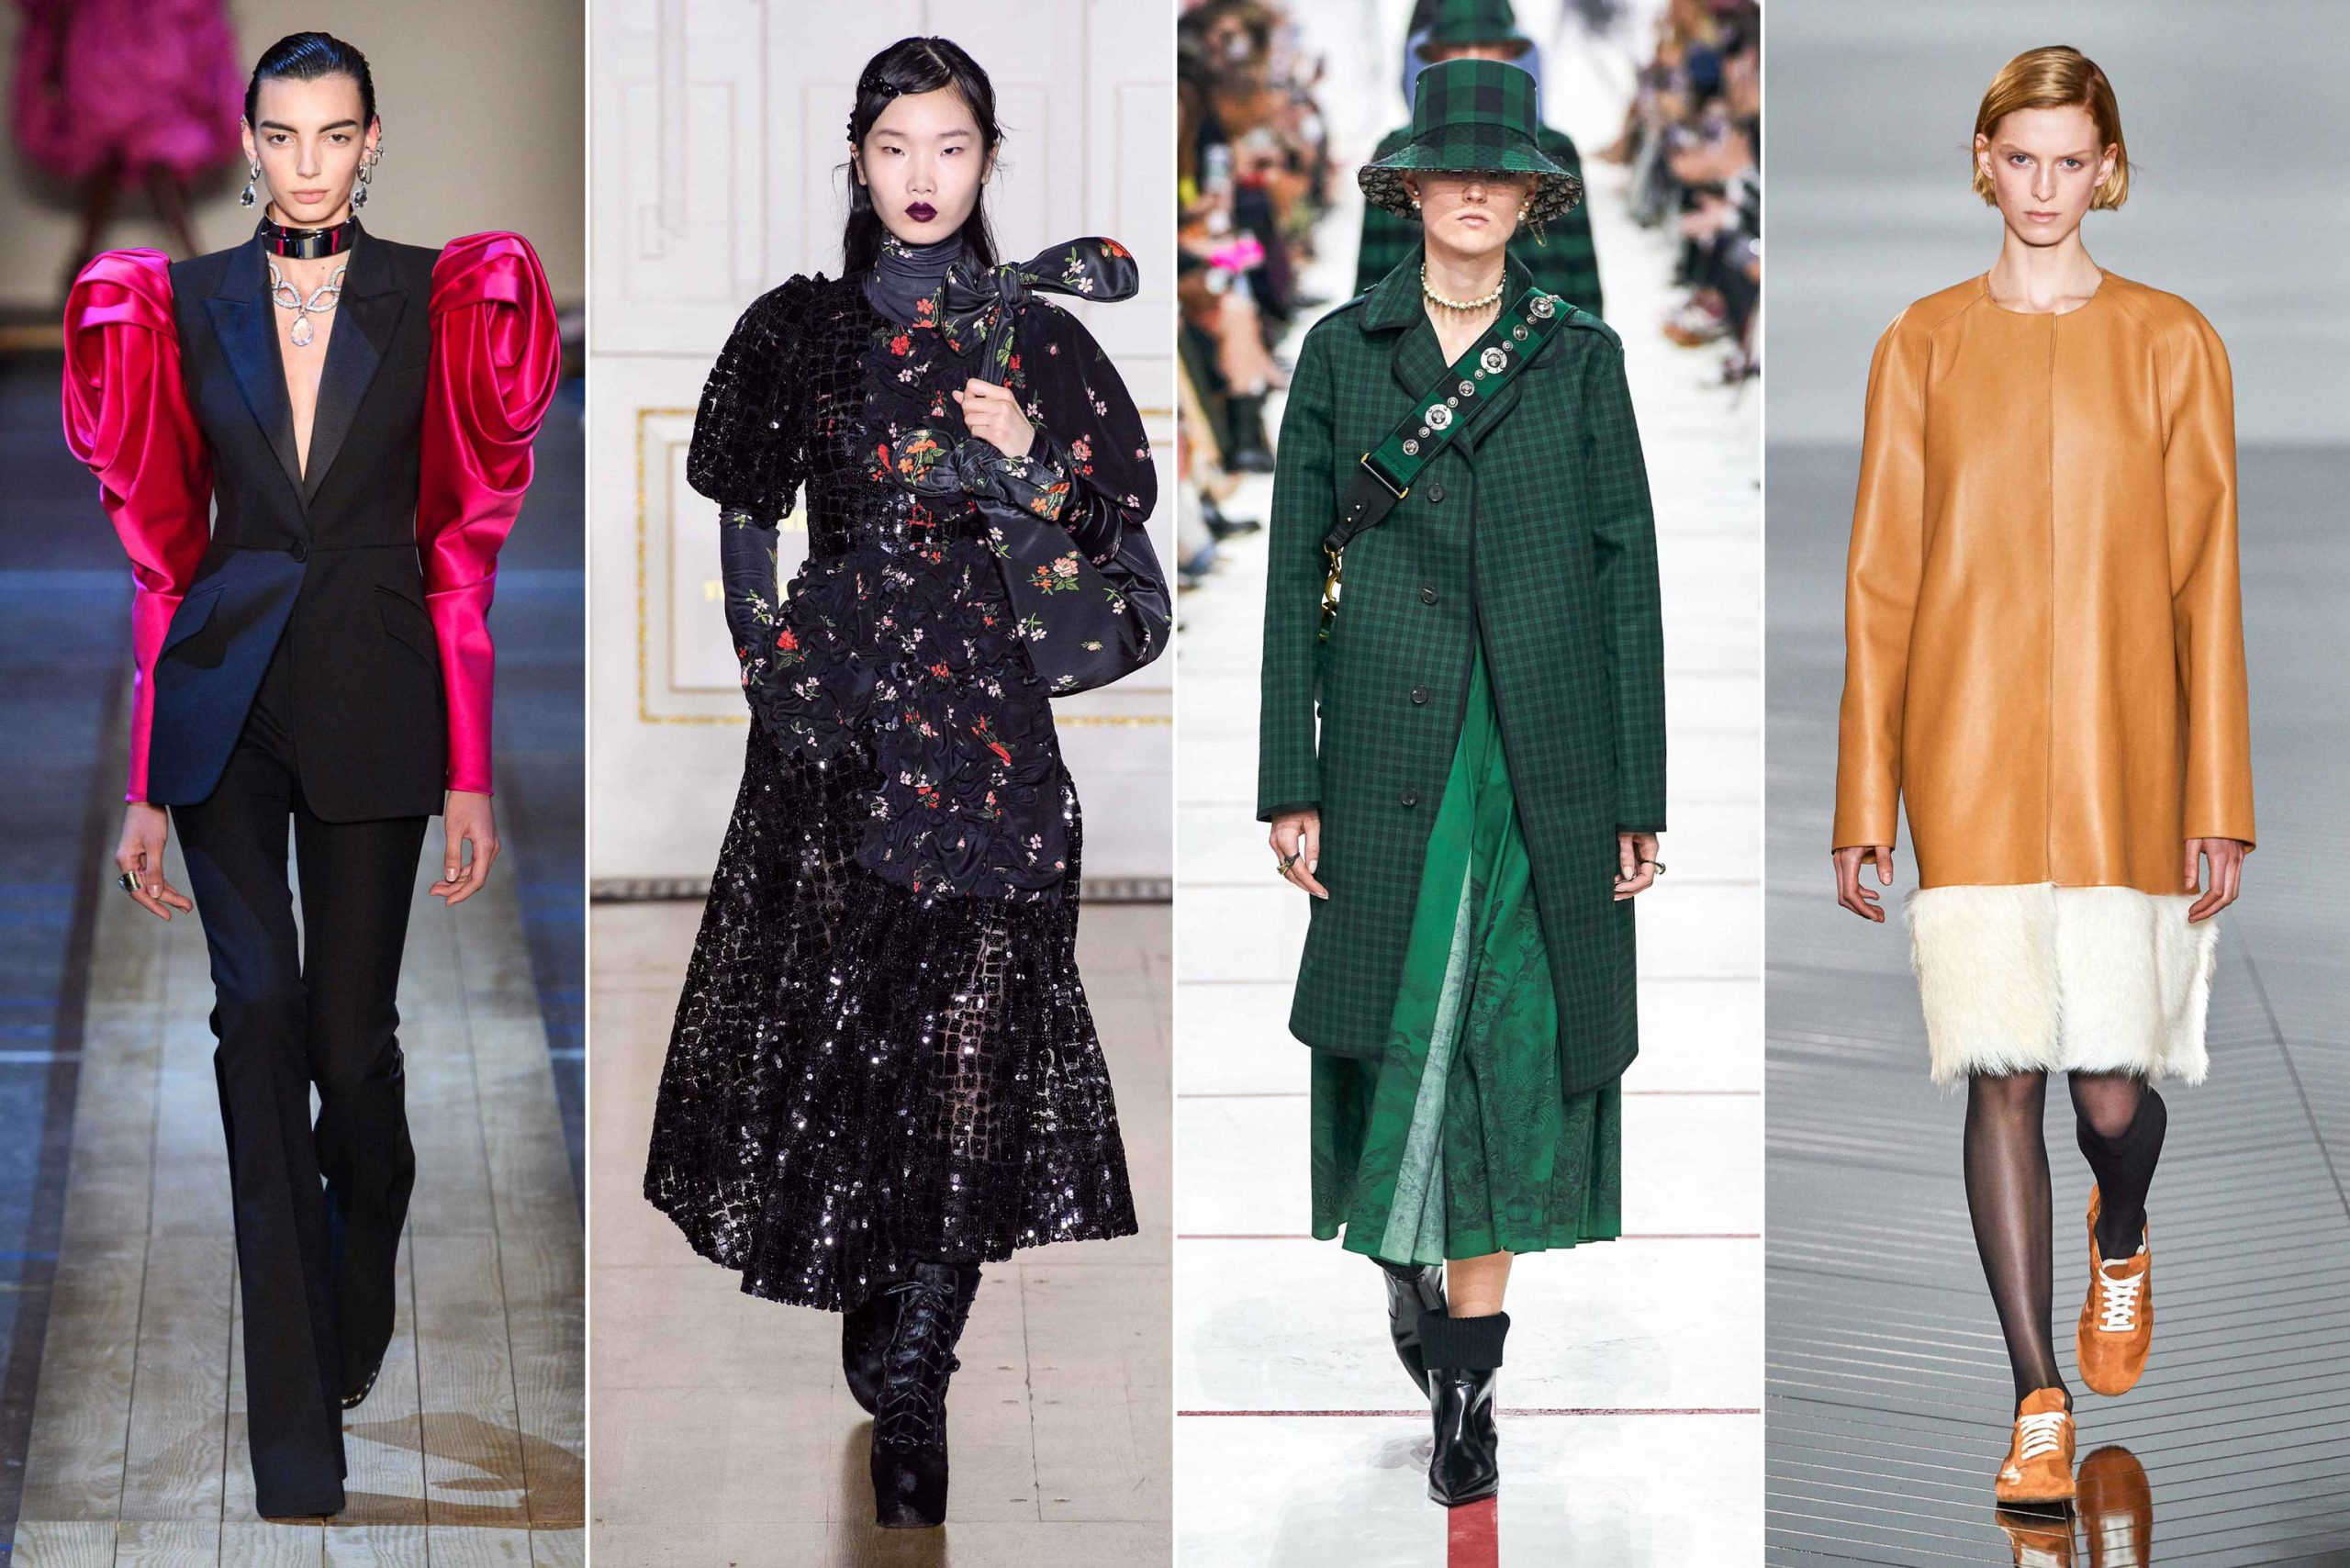 How to Stay on Top with the Current Fashion Trends